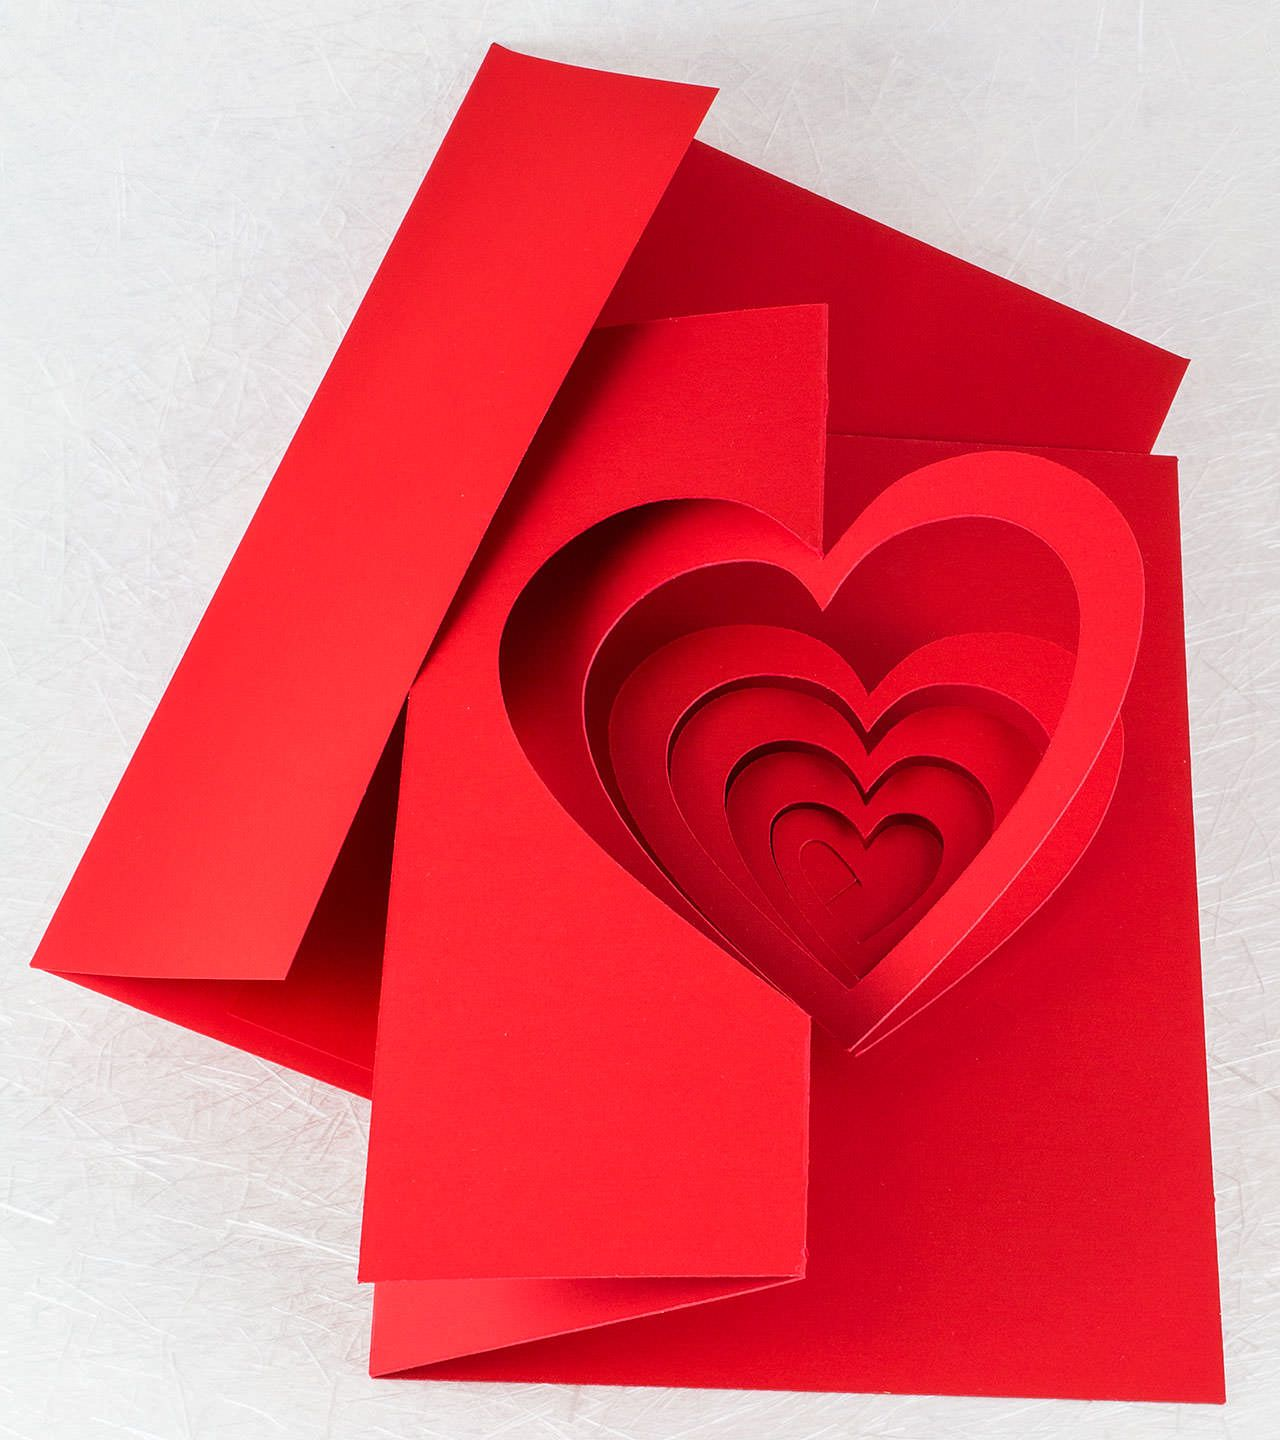 Helical Heart Pop Up Card Popup Card Shop Heart Pop Up Card Pop Up Card Templates Pop Up Valentine Cards